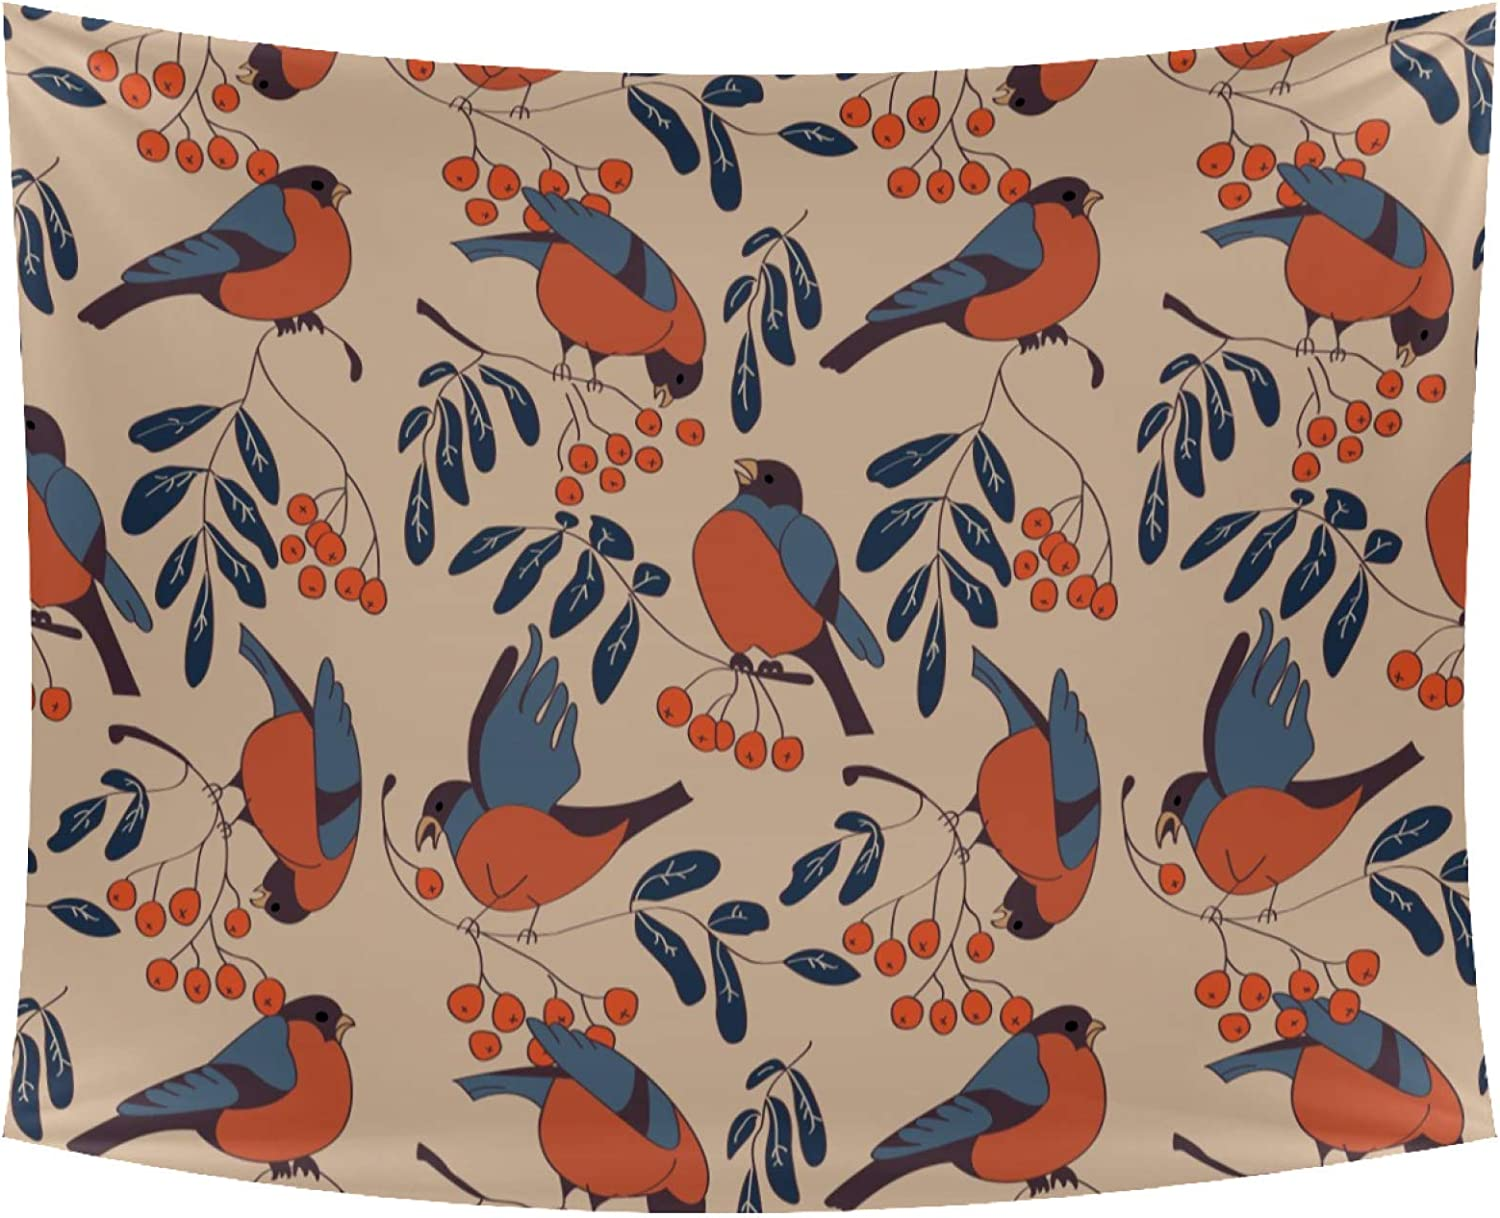 Tapestry Wall Art Decor Seamless Bullfinches Wall Blanket Beach Blanket Wall Hanging Bedding Tapestry 90x56 Inches